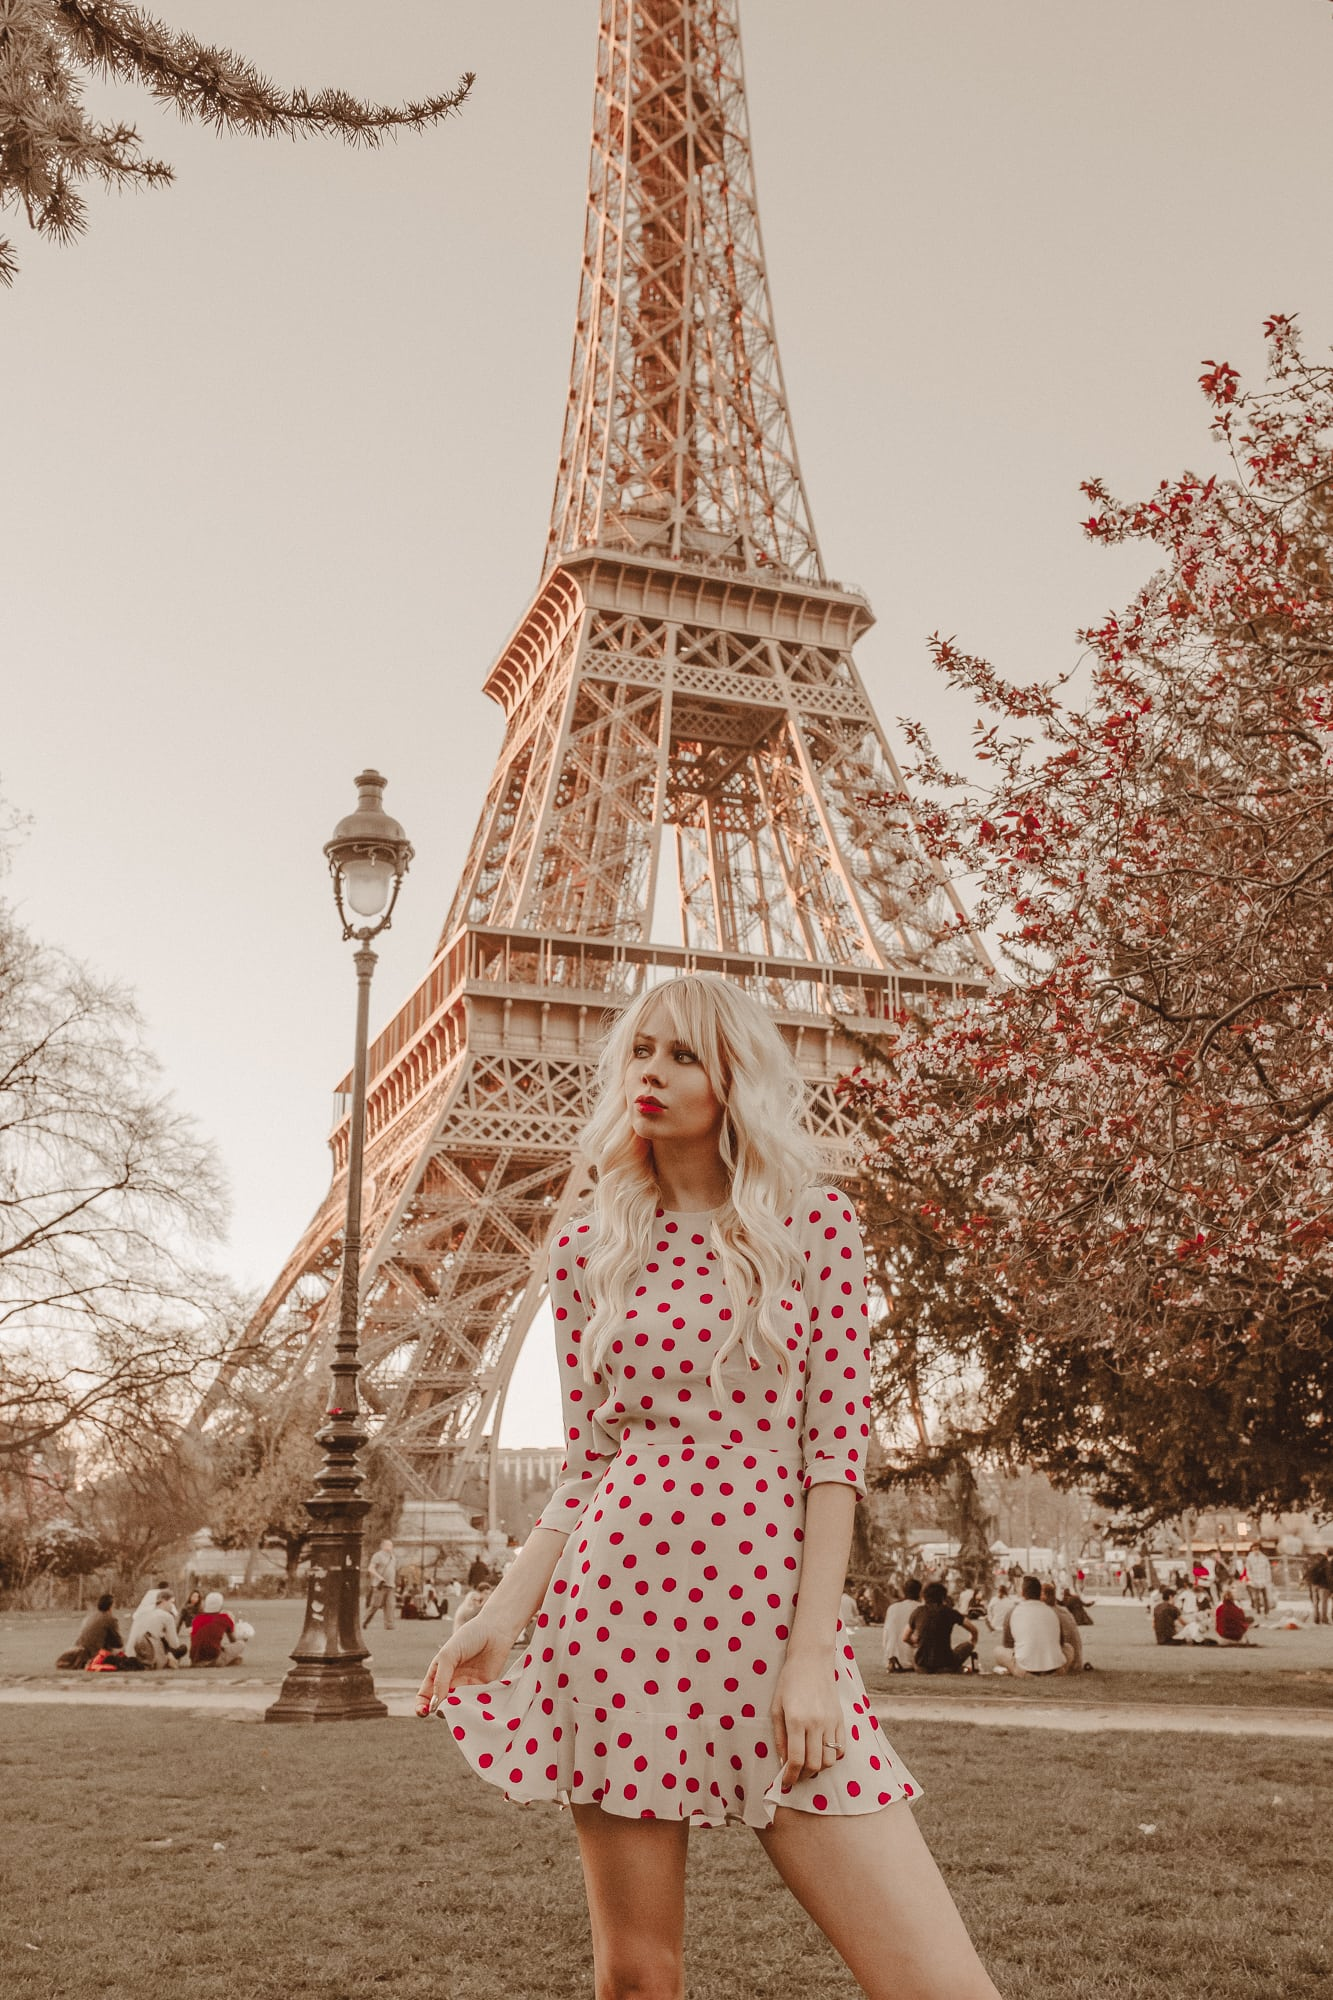 Spring at Eiffel Tower